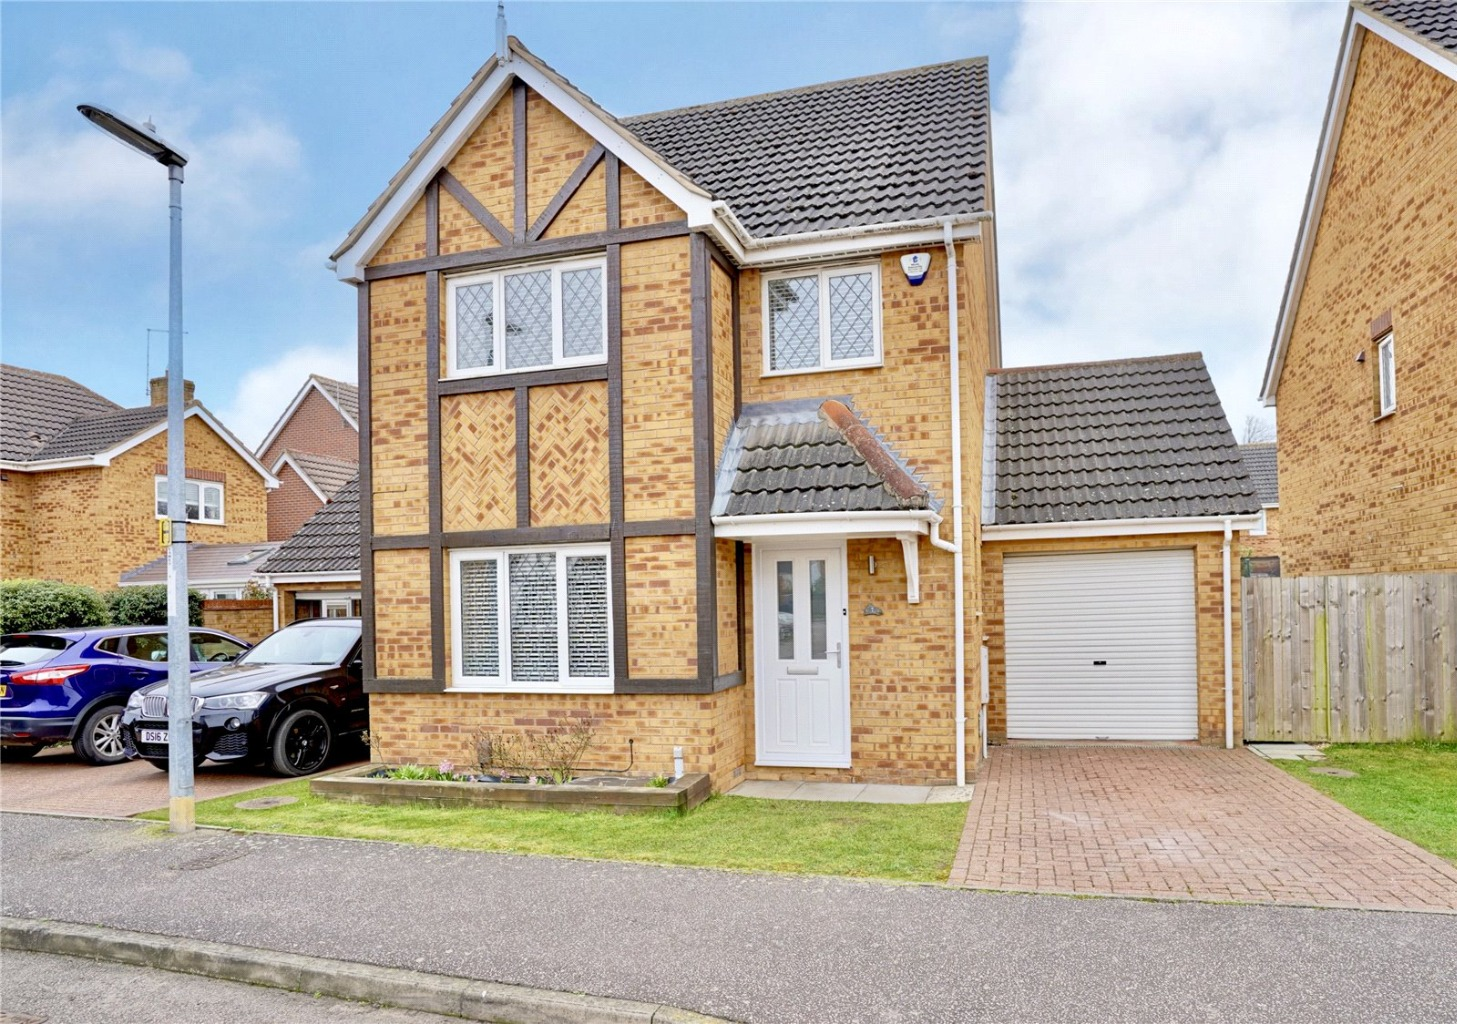 3 bed detached house for sale in Chamberlain Way, St. Neots - Property Image 1